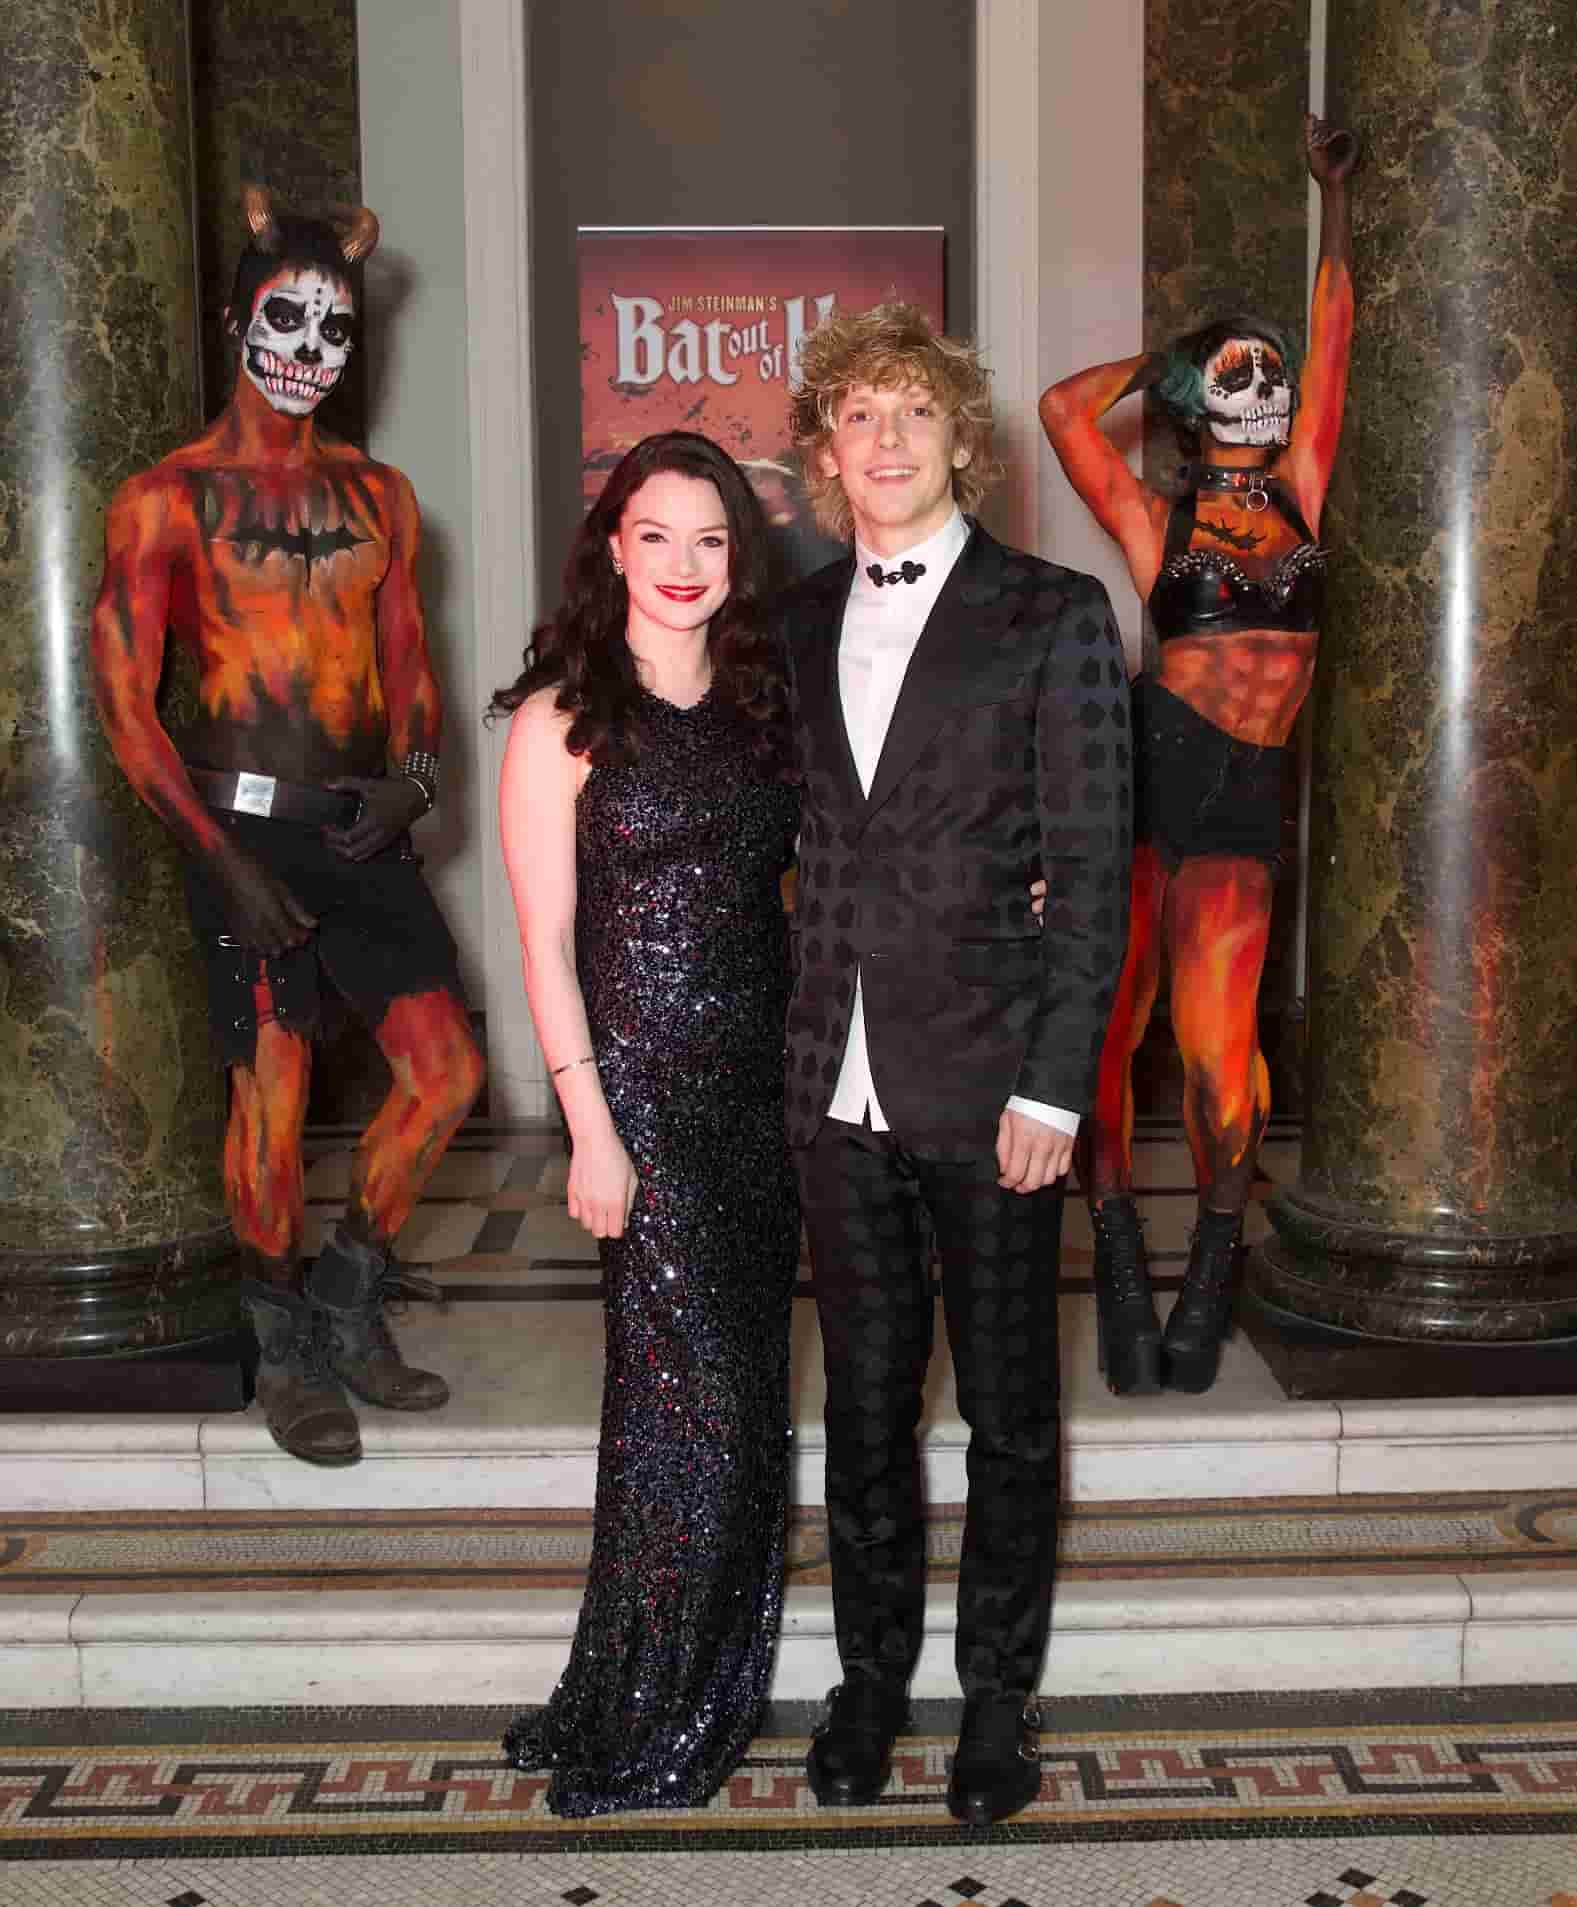 Some of the cast with performers in the reception of 116 Pall Mall